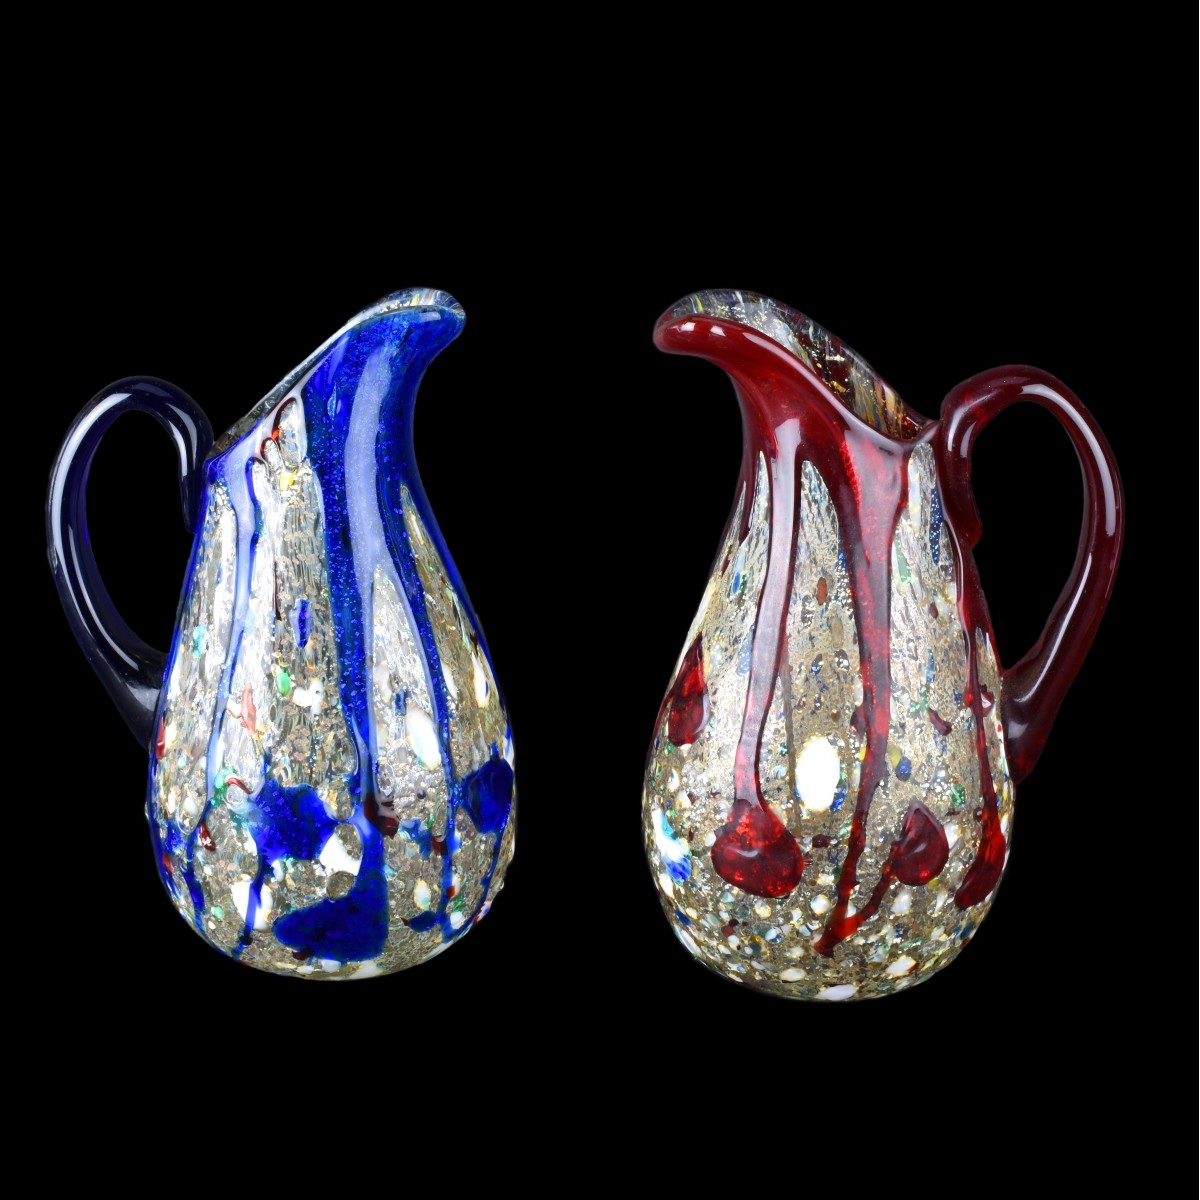 Two (2) Vintage Murano Art Glass Pitchers